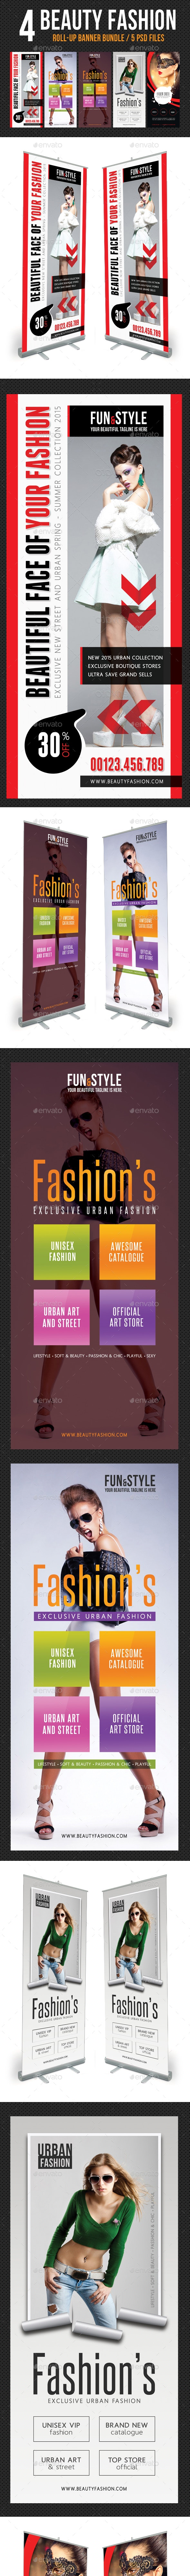 4 in 1 Beauty Fashion Banner Template Bundle - Signage Print Templates